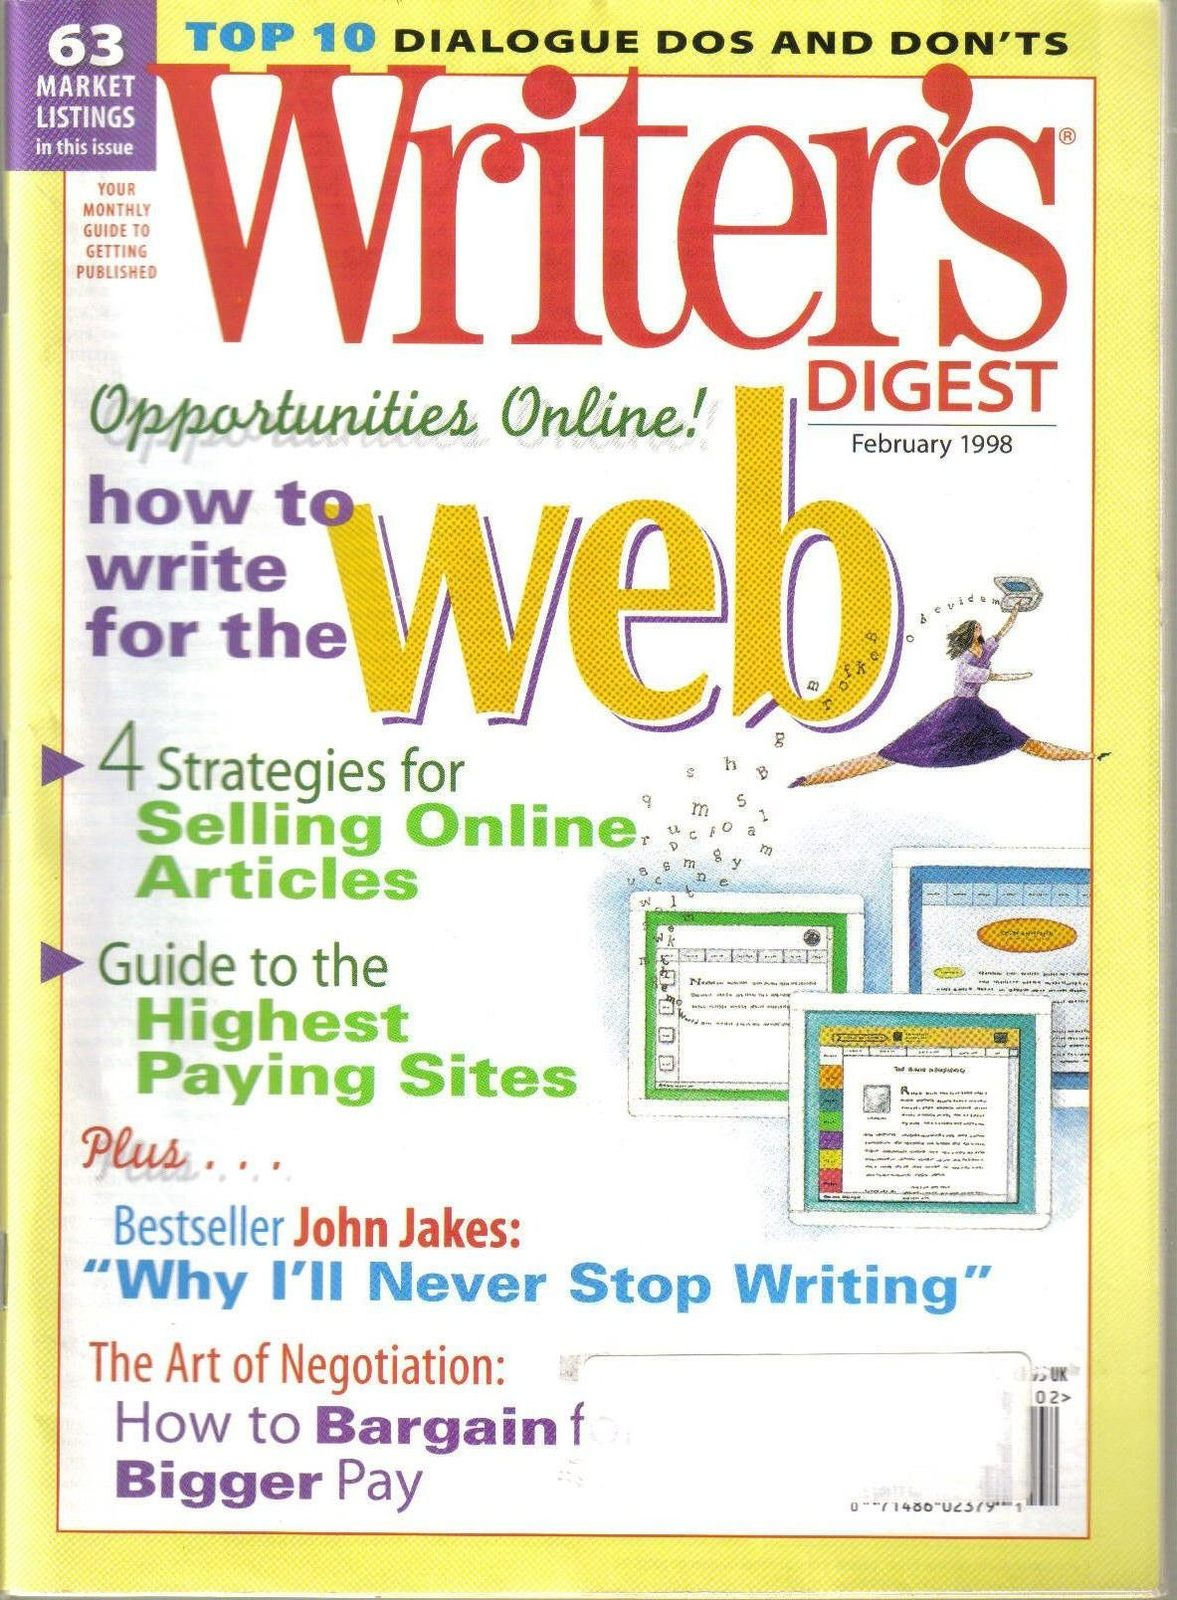 11 WRITER'S DIGEST MAGAZINES+THE WRITER'S HANDBOOK,2002